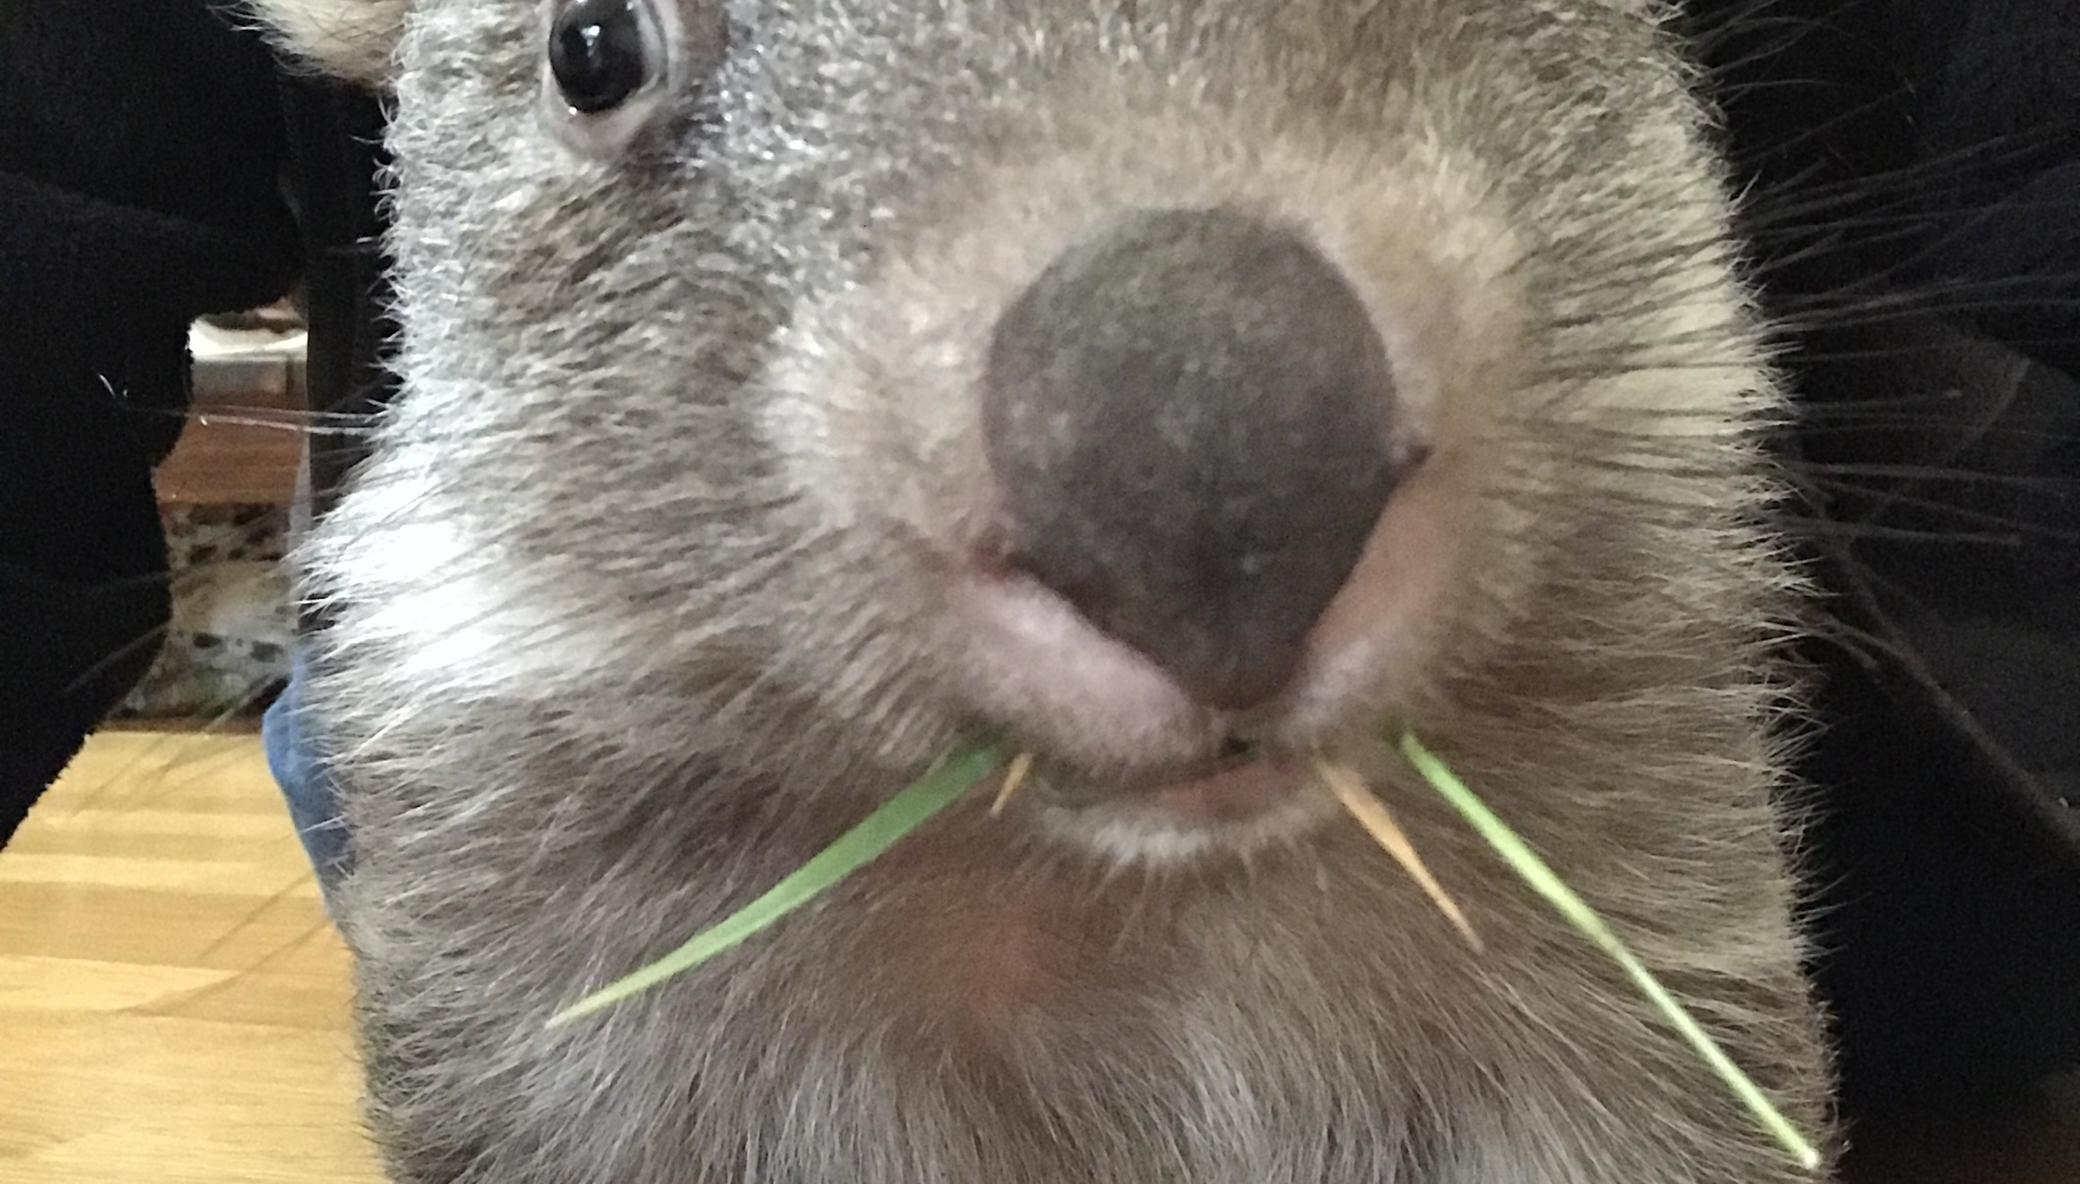 Help save the Bare-Nosed Wombat